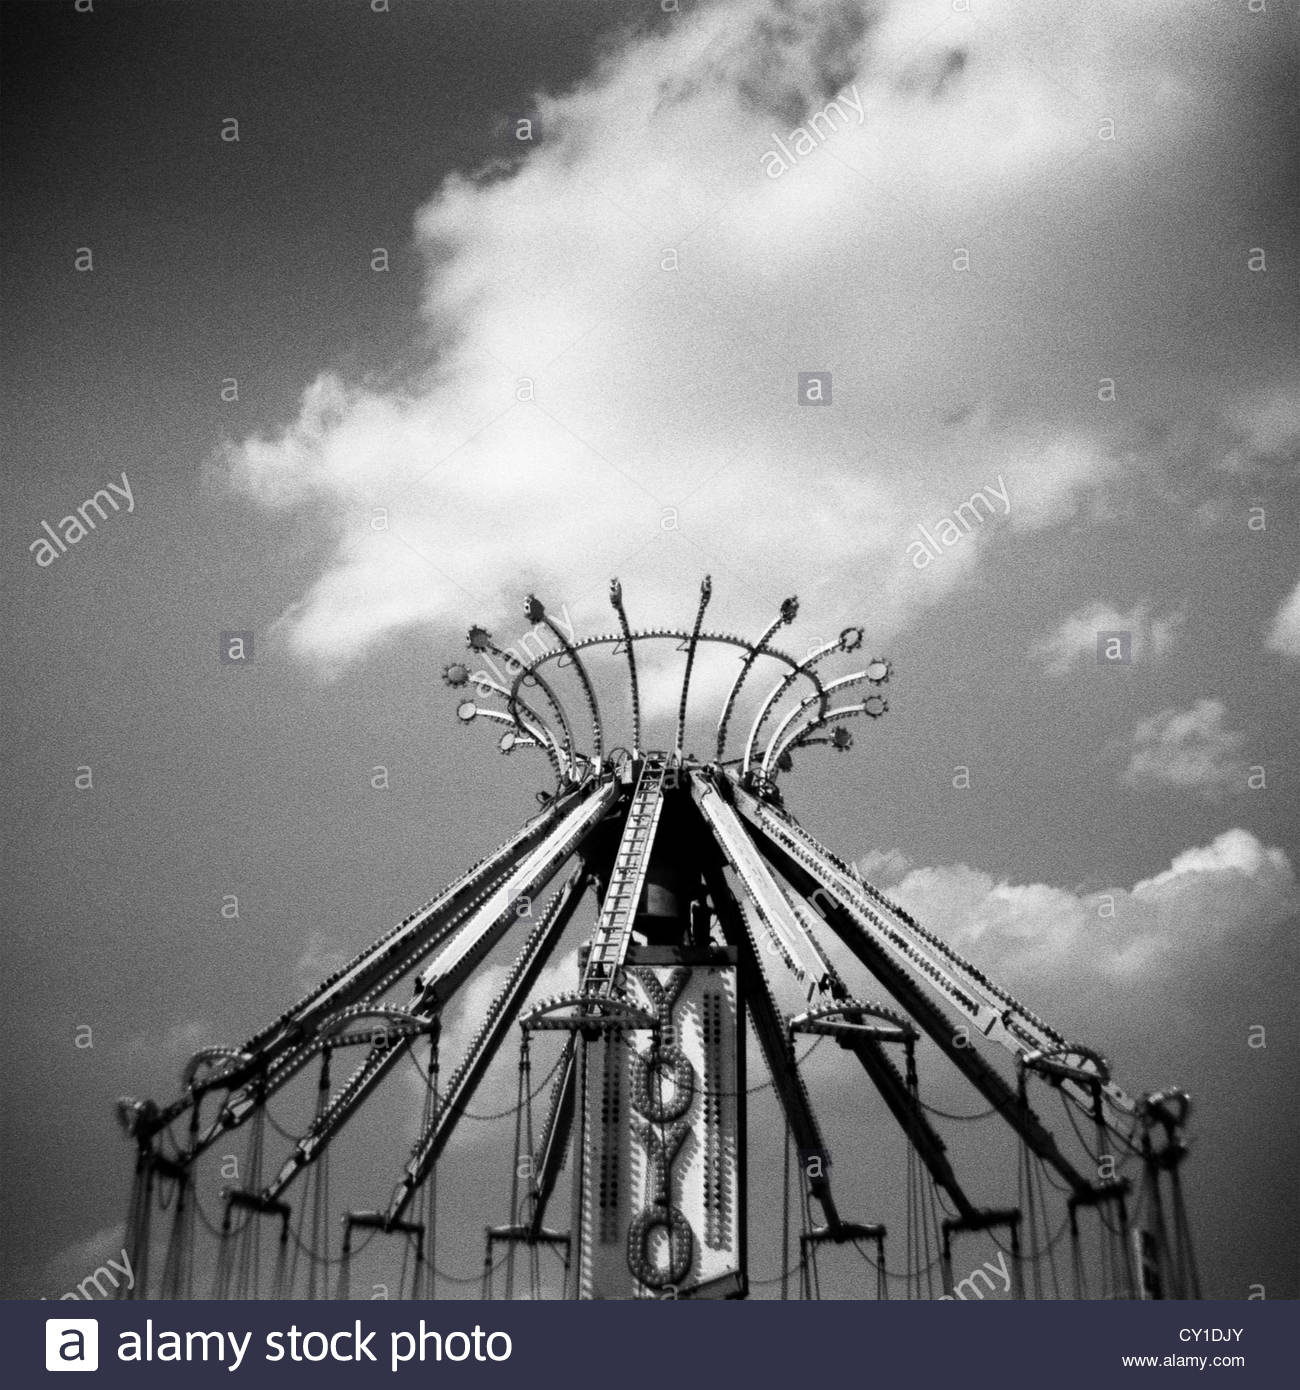 Monochrome Holga carnival image of Yoyo ride with clouds - Stock Image